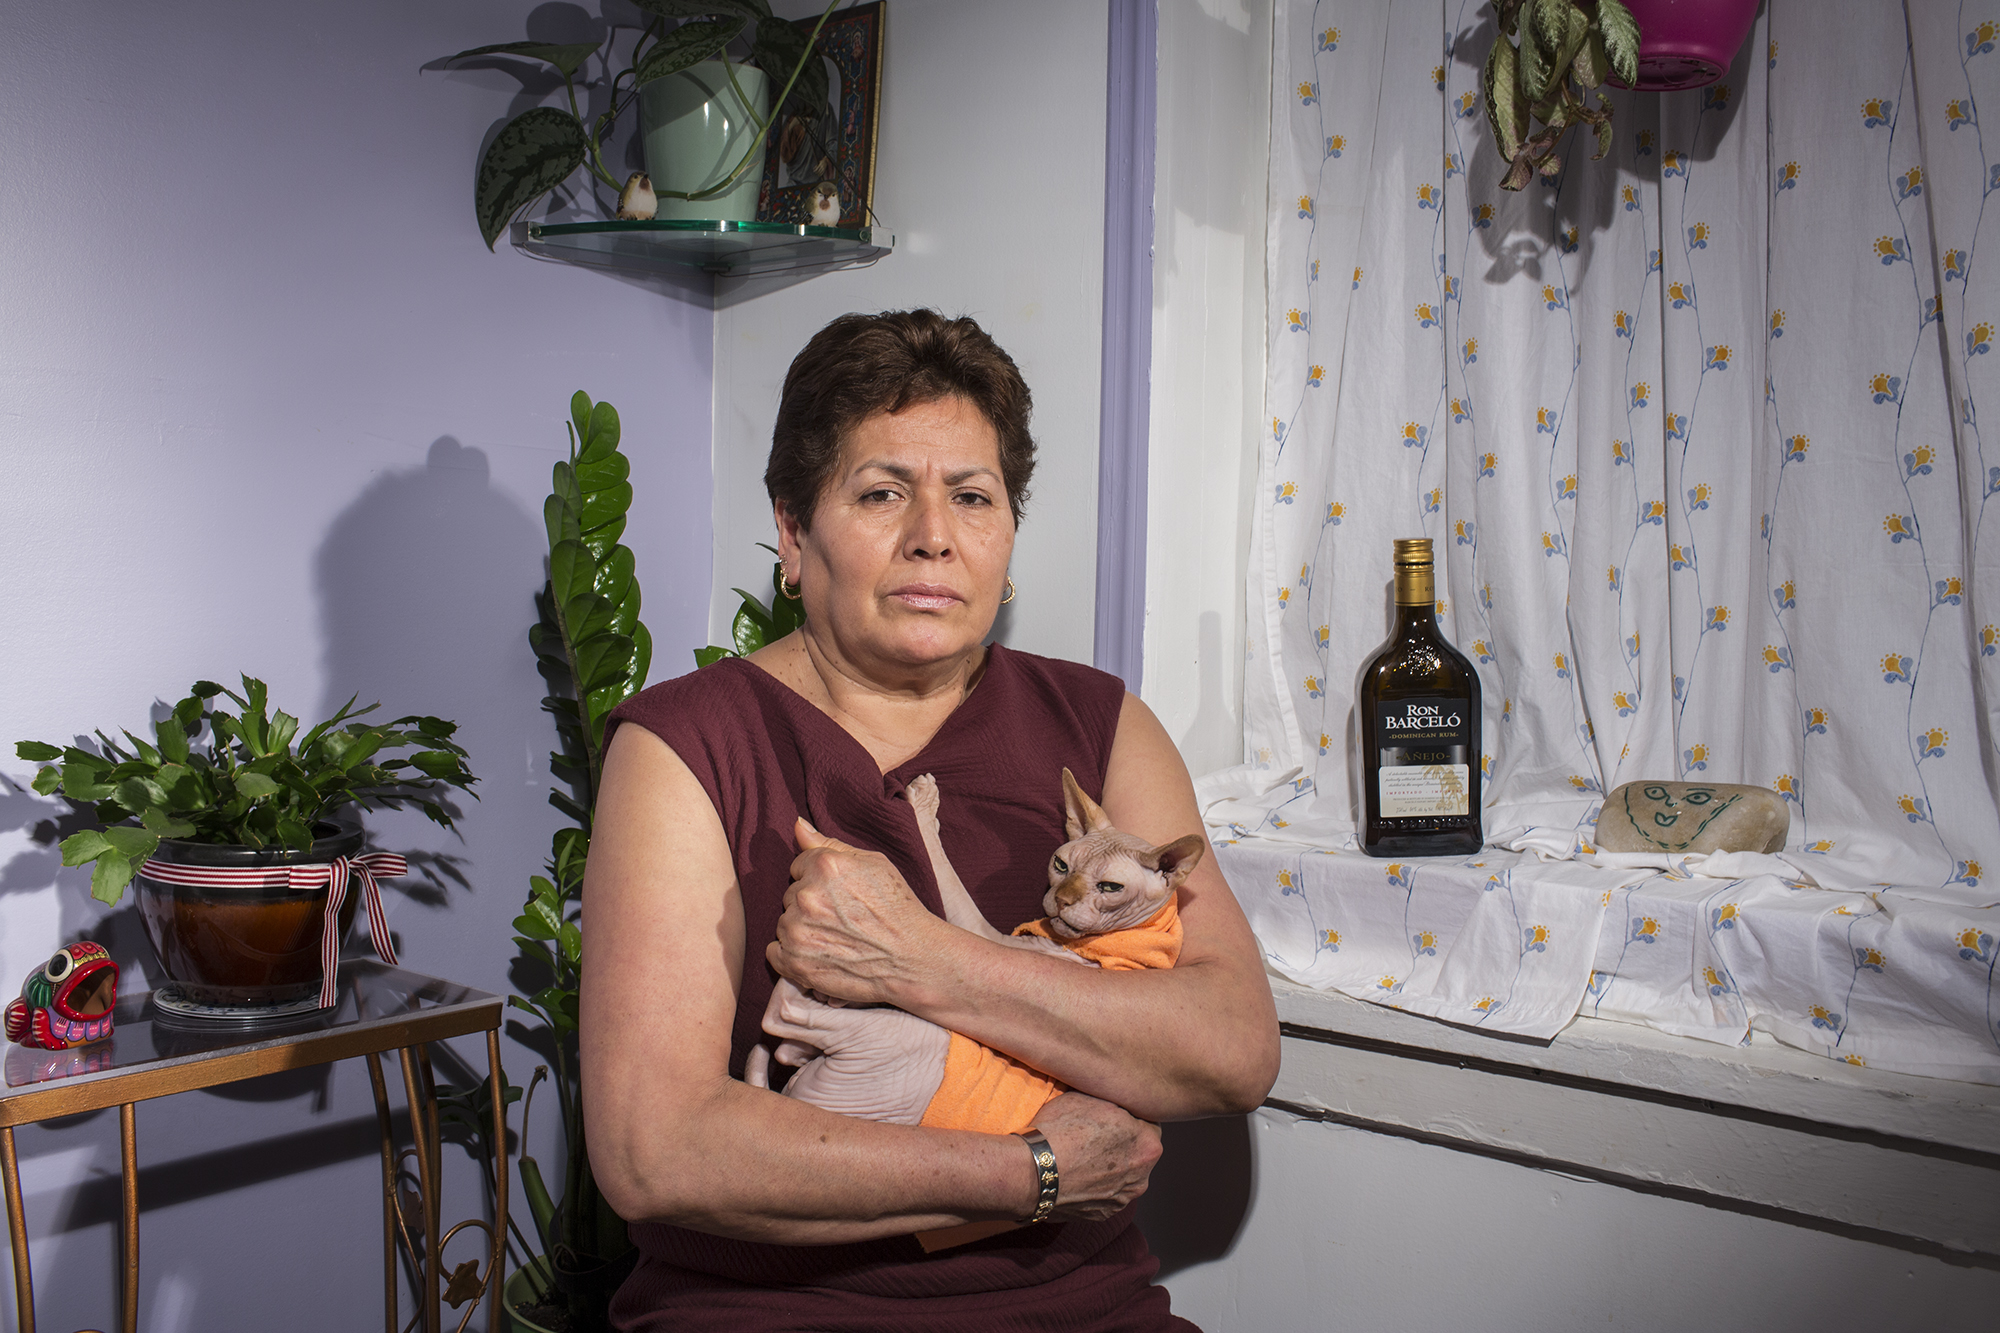 """Guadalupe Lara is an activist. After Hurricane Sandy in 2012, she became involved in the church of Saint Jacobi, where she is the president of the church council, the main hub of what came to be known as """"Occupy Sandy."""" She organized and coordinated the food supplies to provide food and help to the victims of the hurricane. Lupe likes to go to the casinos."""